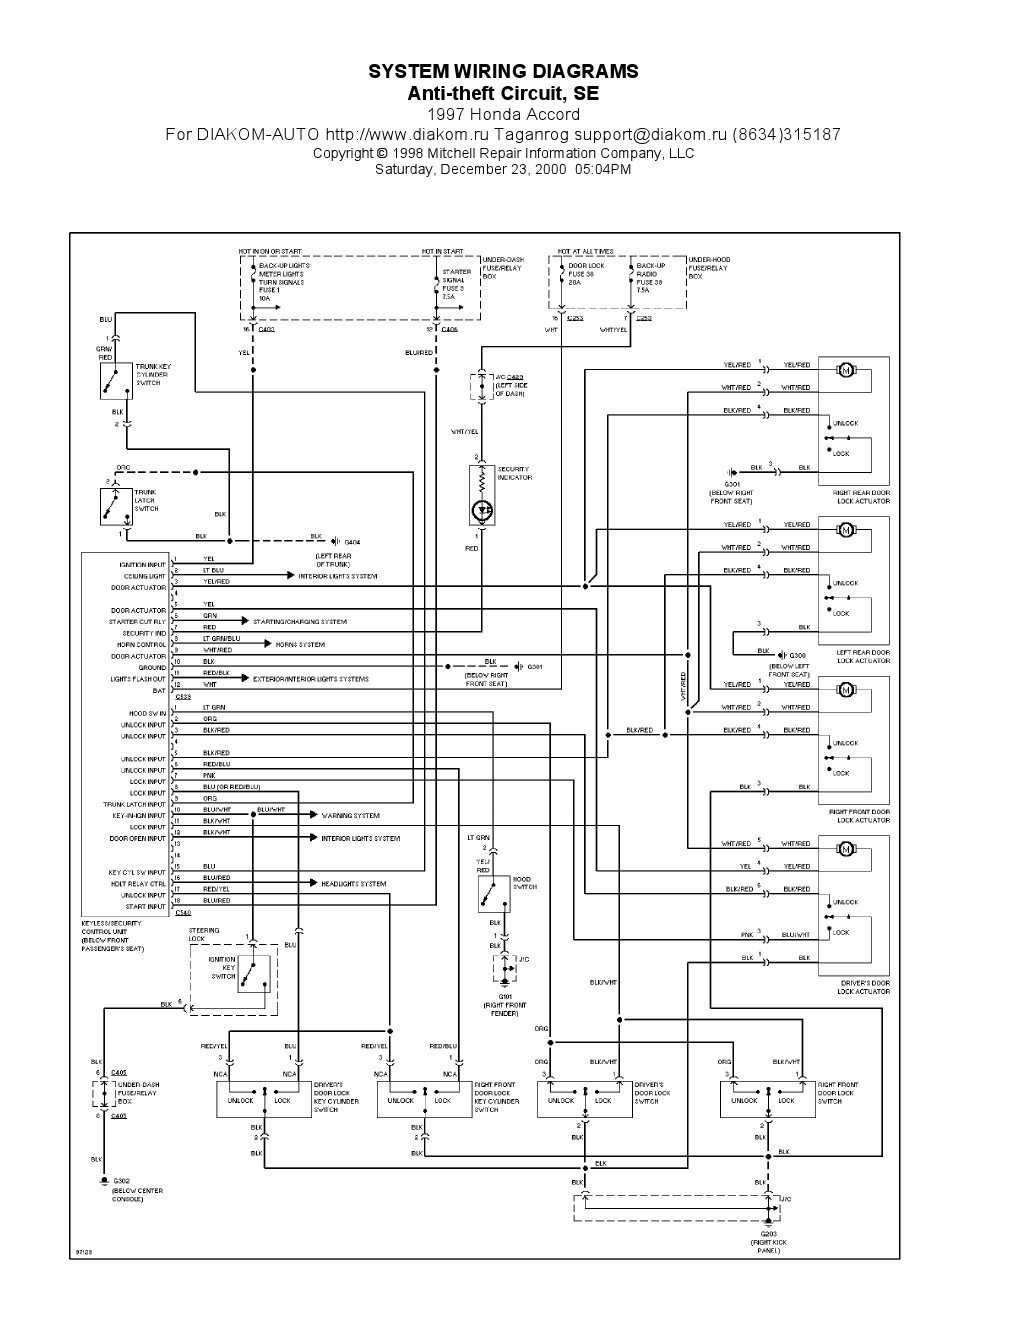 hight resolution of 97 honda accord wiring diagram wiring diagram post 97 honda accord headlight wiring diagram